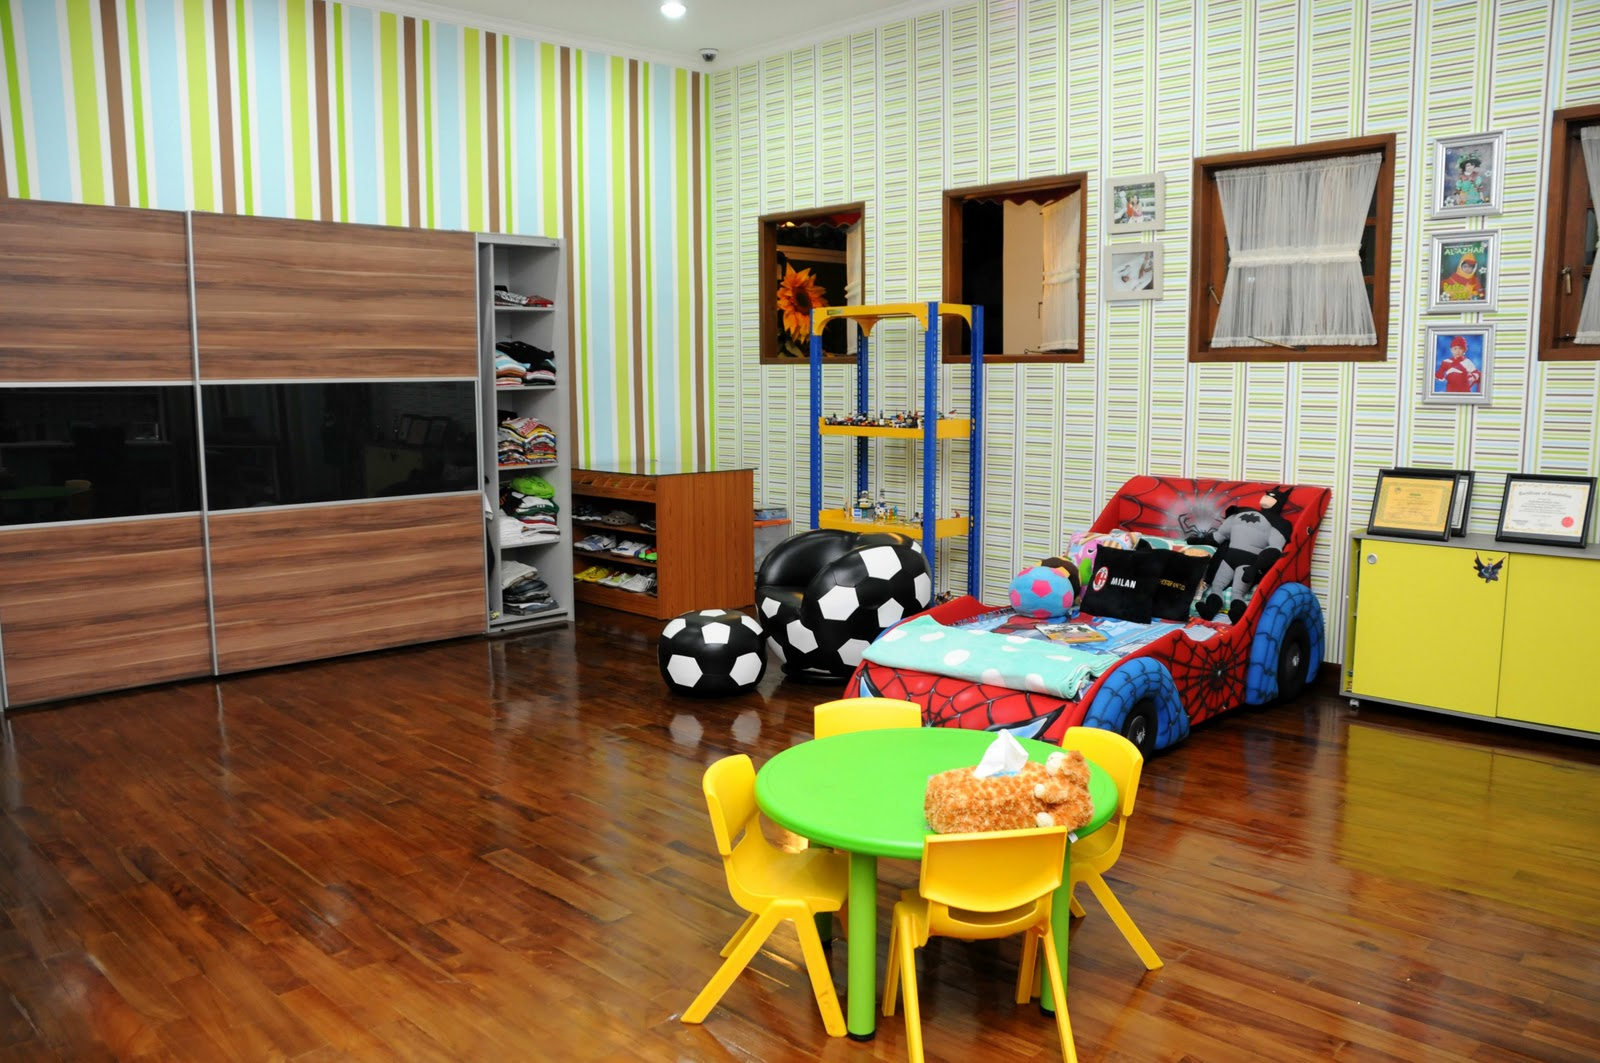 Home and Garden Review and Tips: Designing Child Play Room